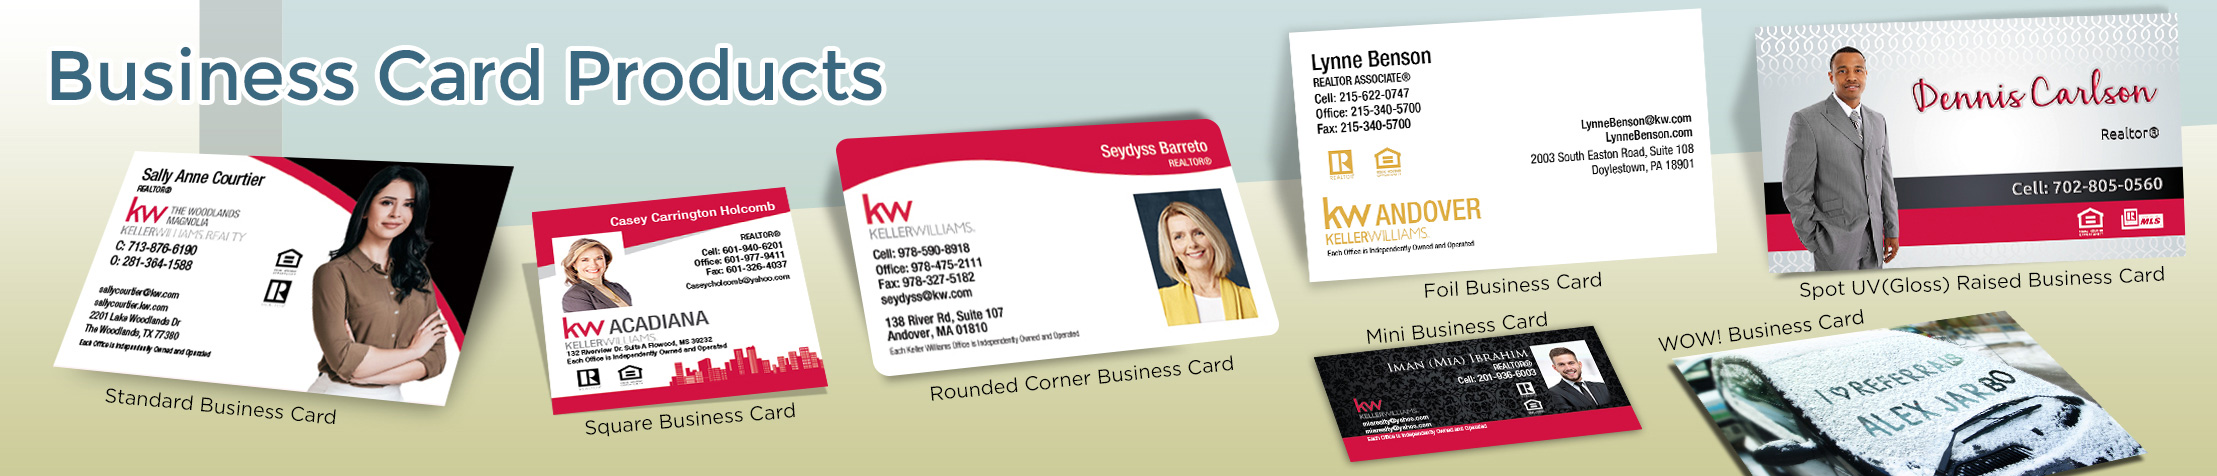 Keller Williams Real Estate Business Card Products - KW Approved Vendor - Unique, Custom Business Cards Printed on Quality Stock with Creative Designs for Realtors | BestPrintBuy.com